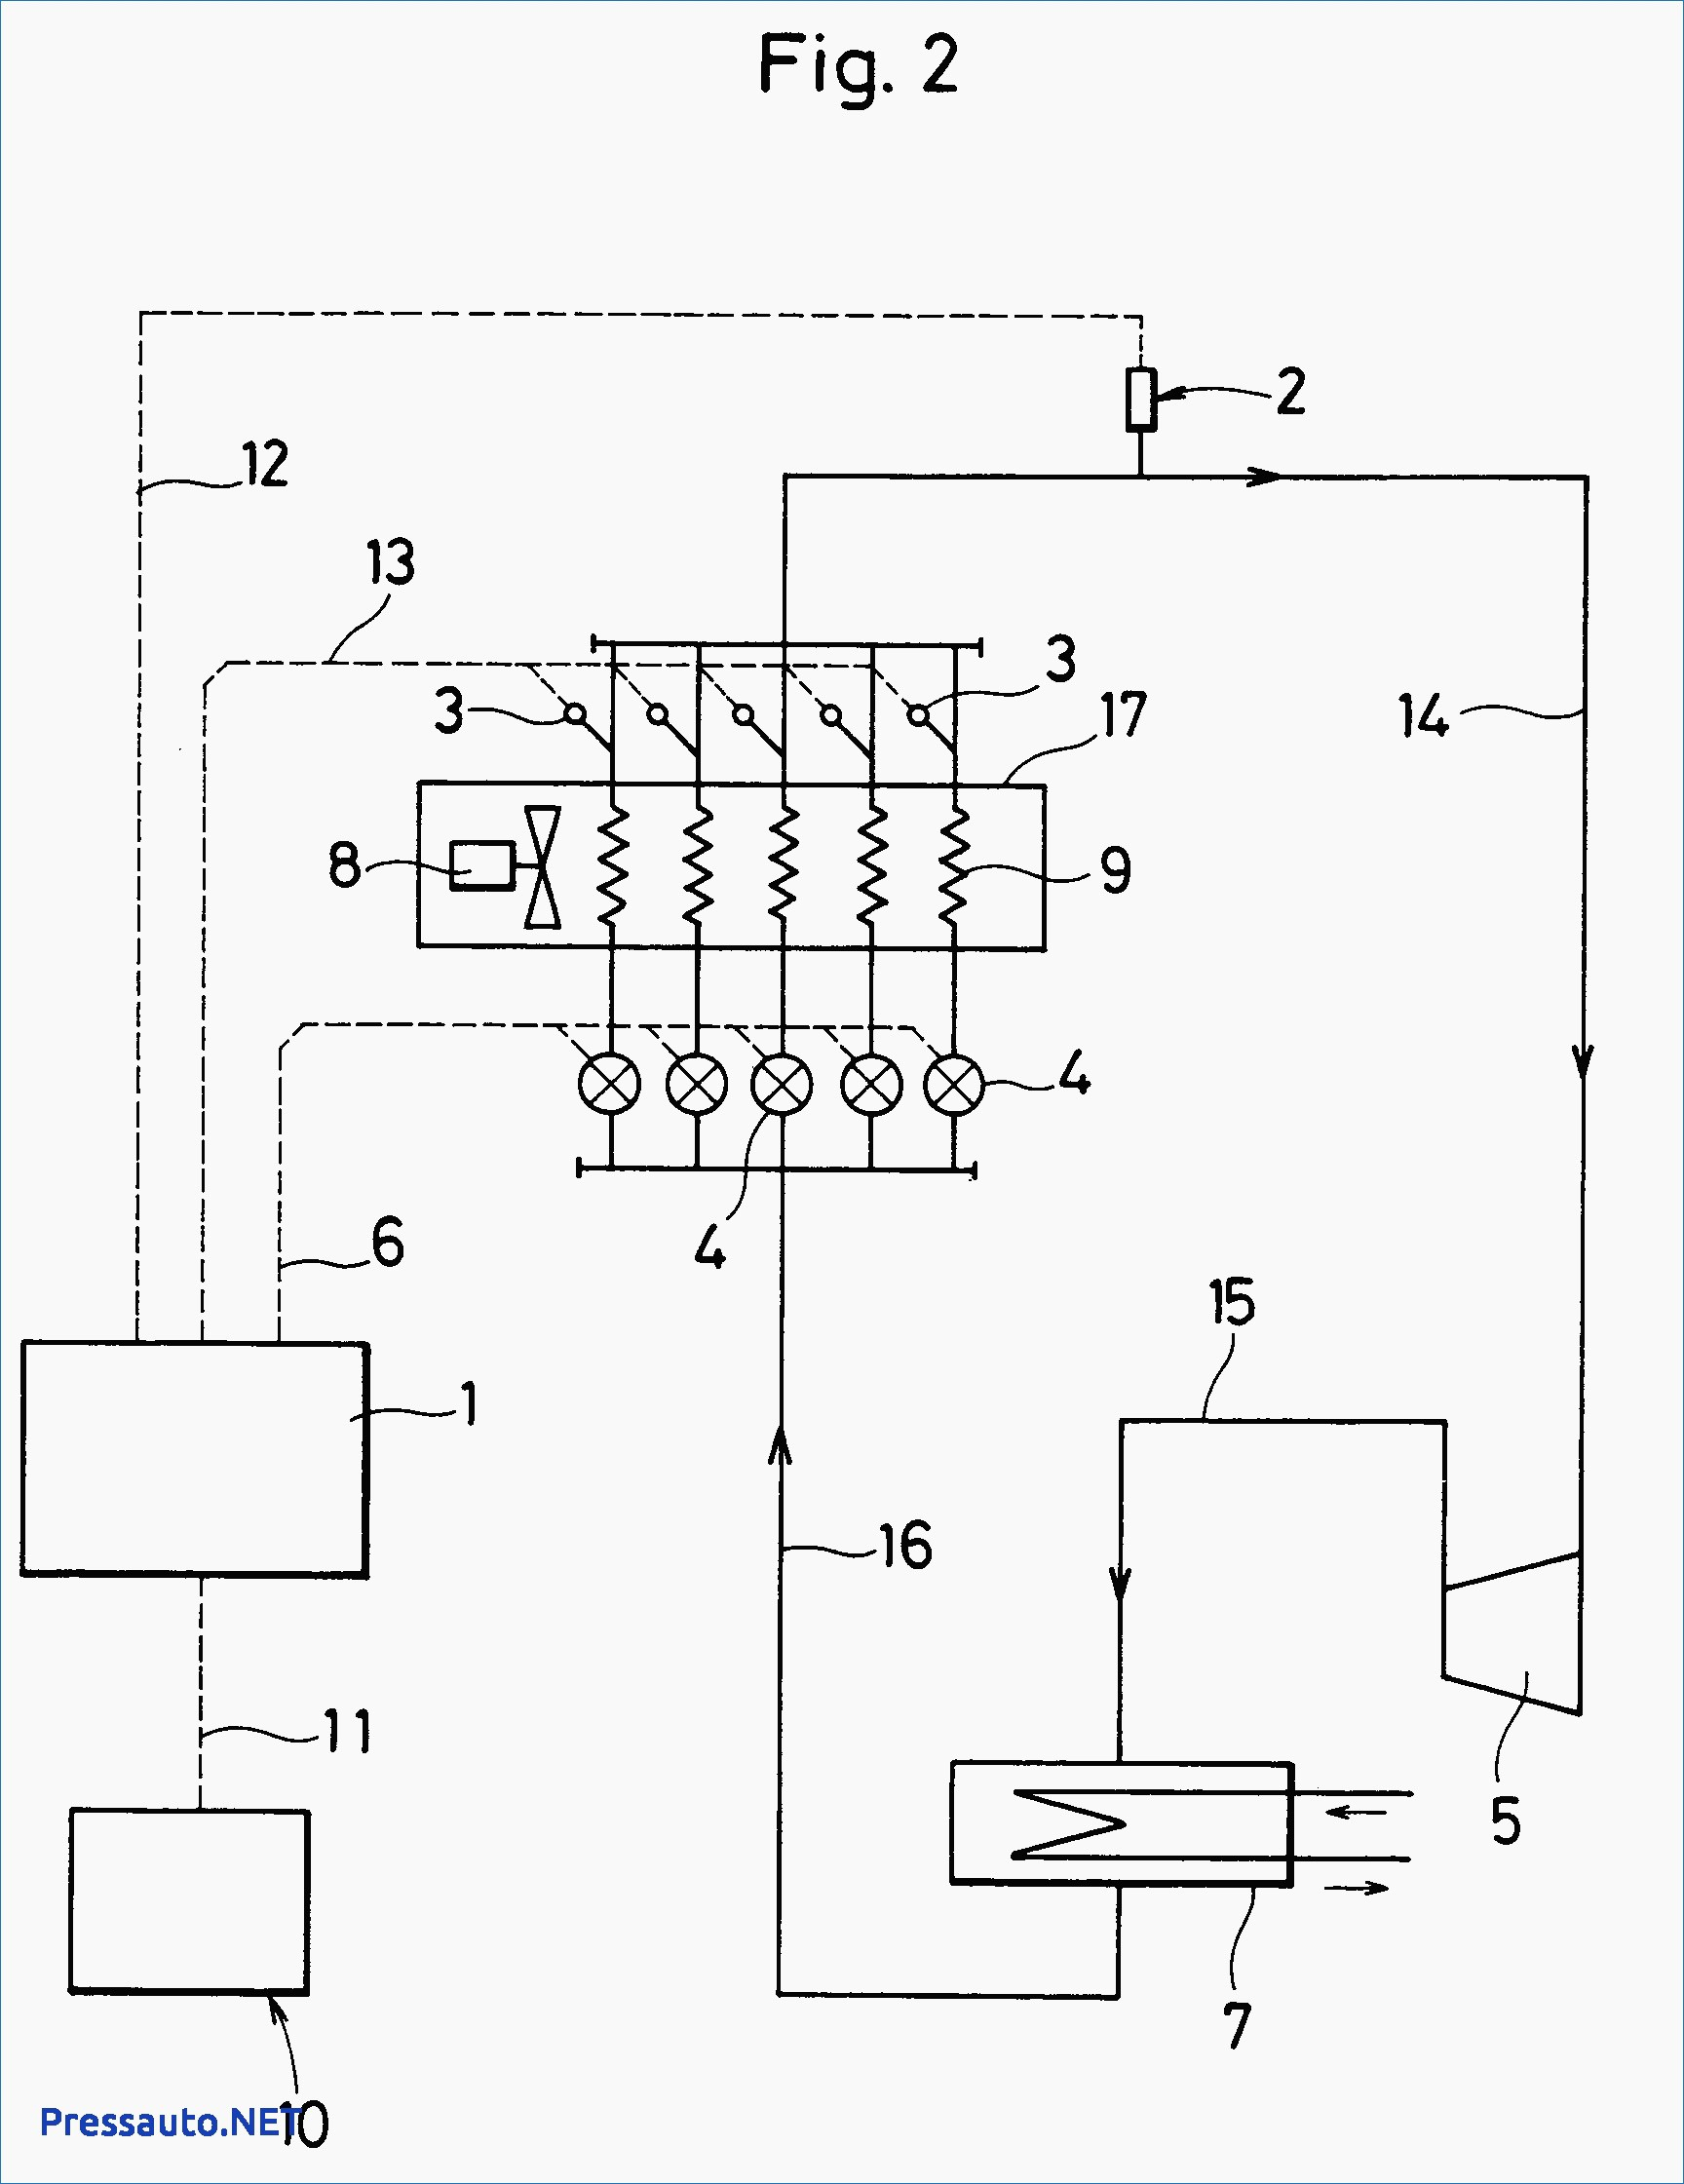 hight resolution of walk in freezer wiring diagram heatcraft walk in freezer wiring diagram download wiring diagram amazing